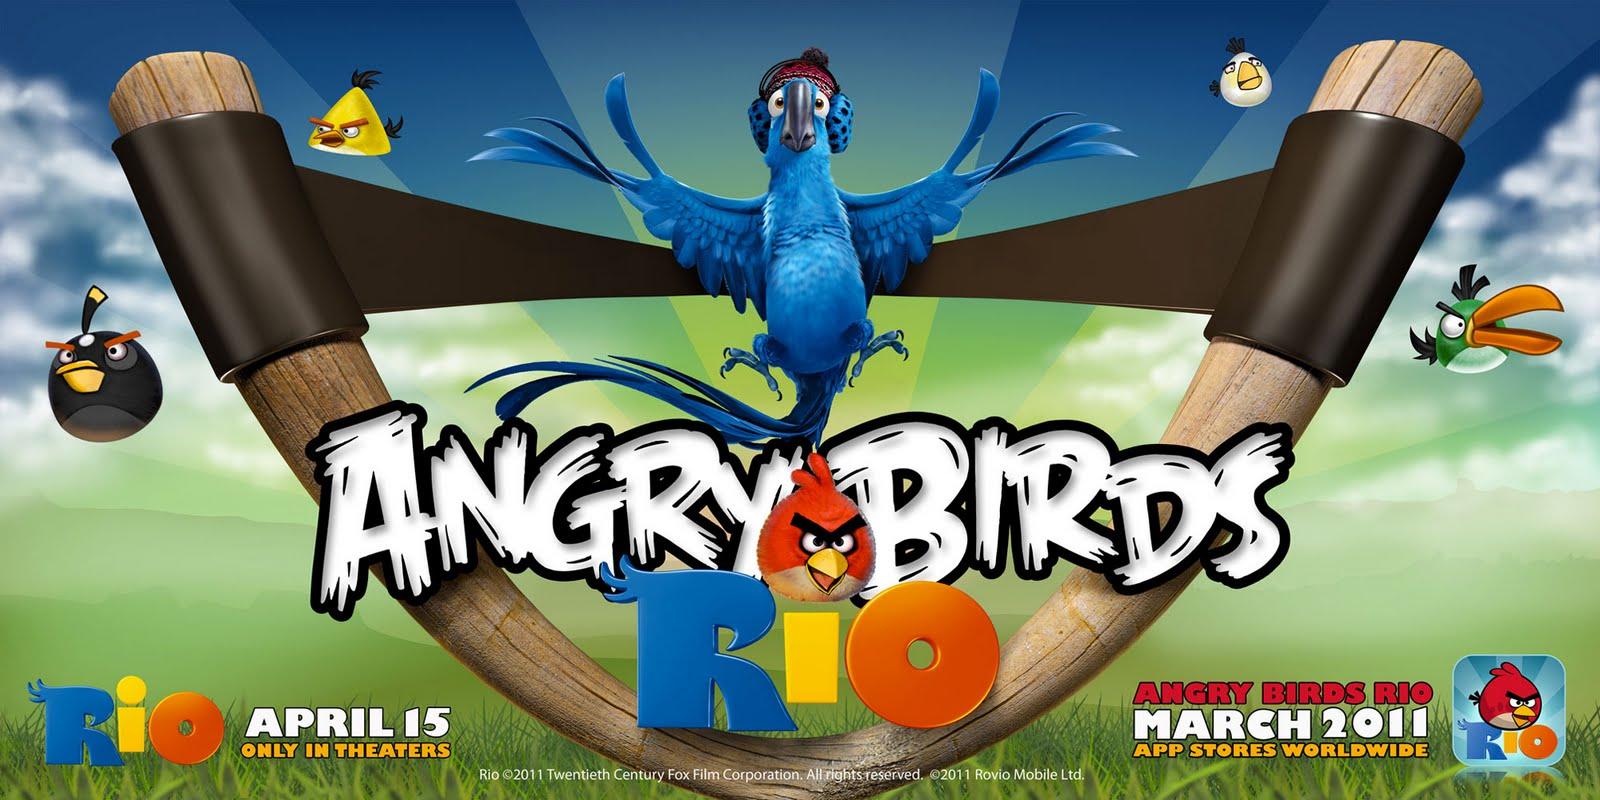 Angry Birds Game HD Wallpapers Desktop Wallpapers 1600x800